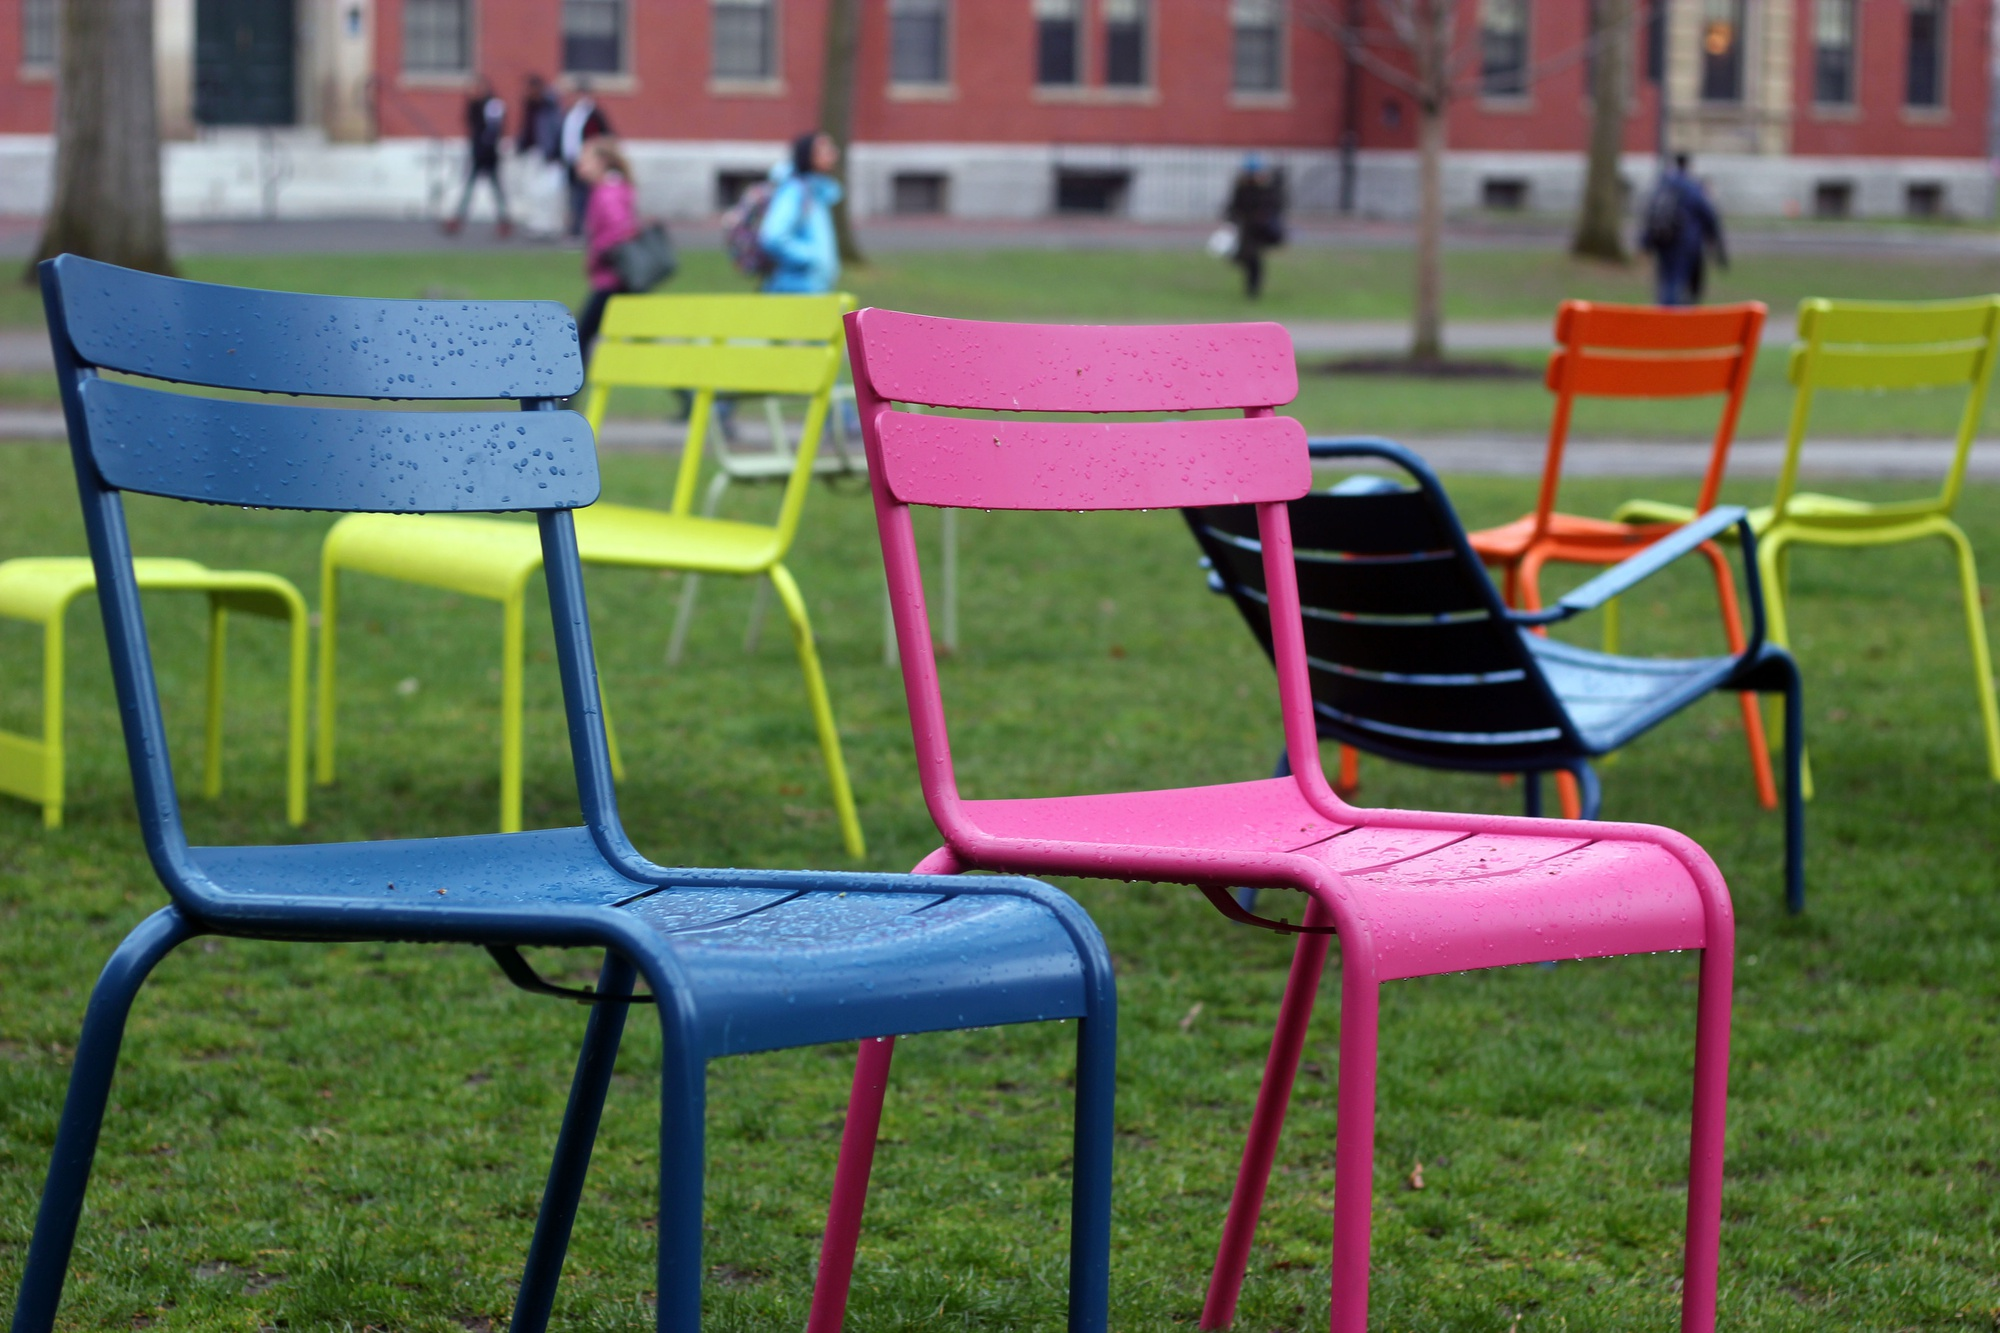 The colorful chairs that have become a staple of the Yard for the warmer months were placed back in Harvard Yard this week. The chairs were first added to the Yard in 2009 as part of the Harvard Common Spaces effort to make the Yard more accessible for the entire community